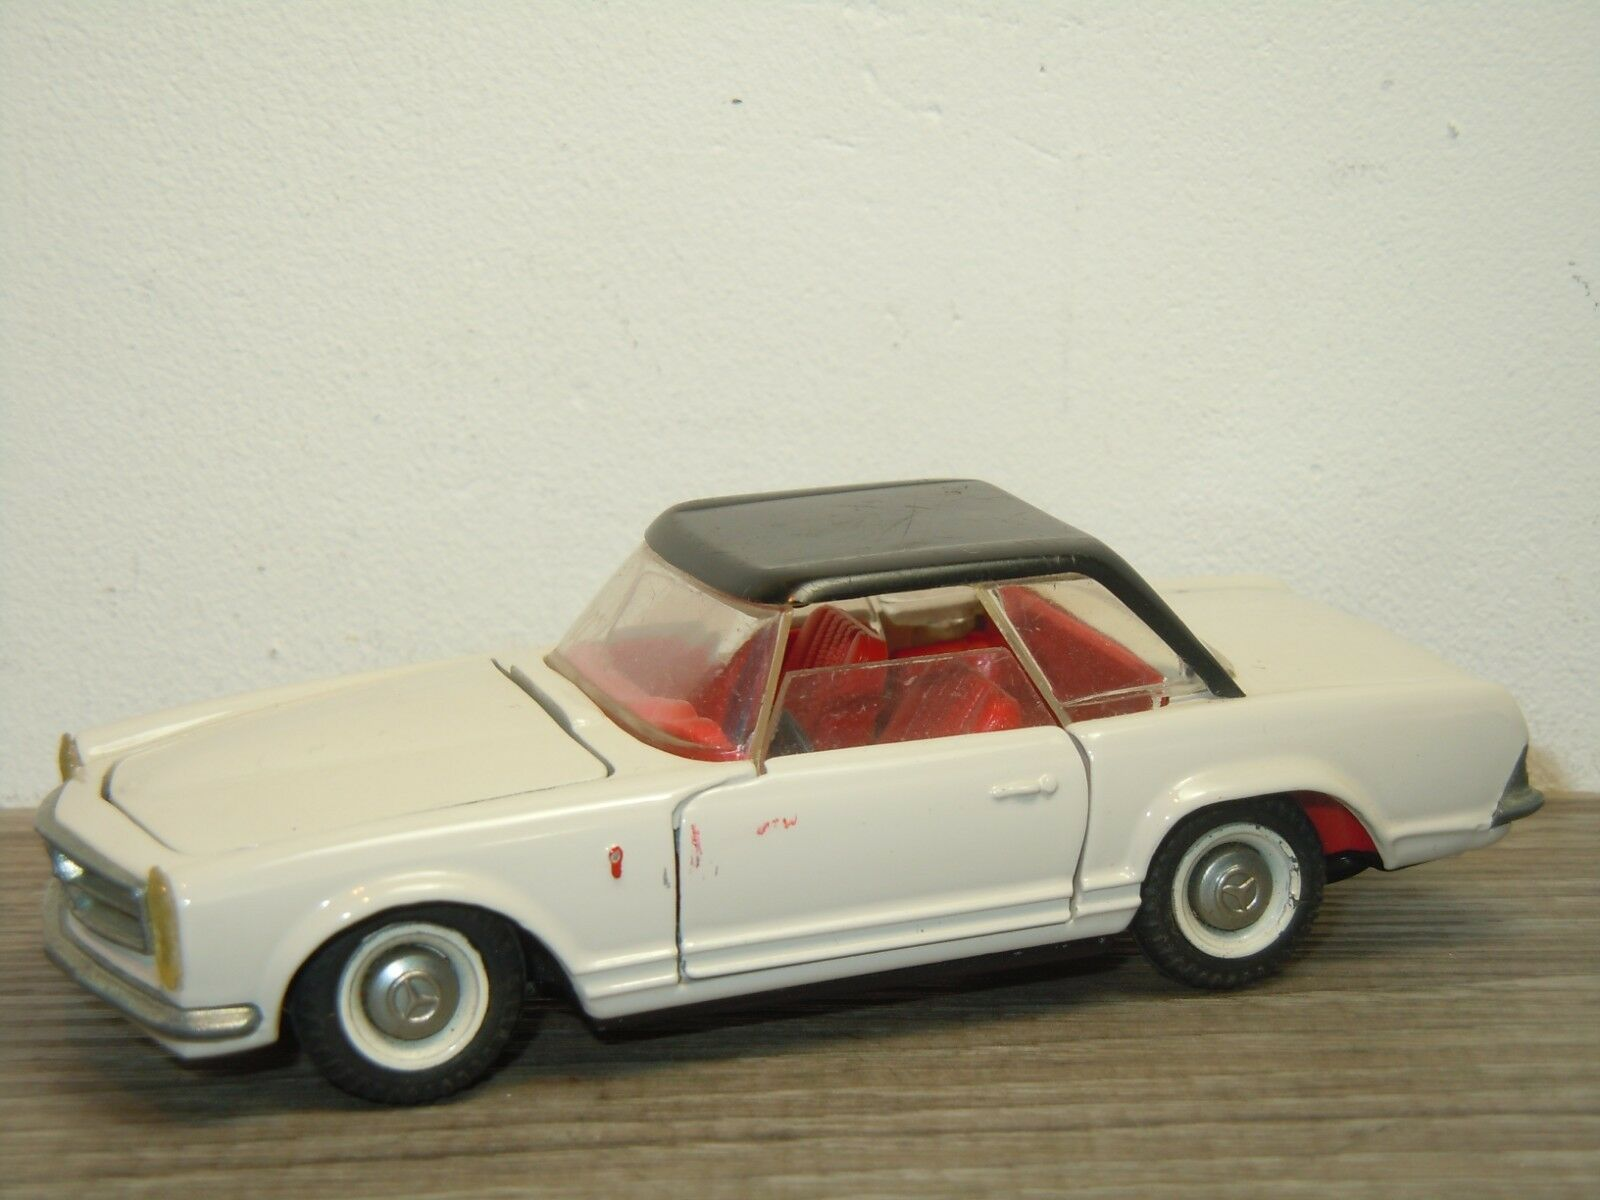 Mercedes 280SL Pagoda Closed Roof - Tekno 929 Denmark 36516